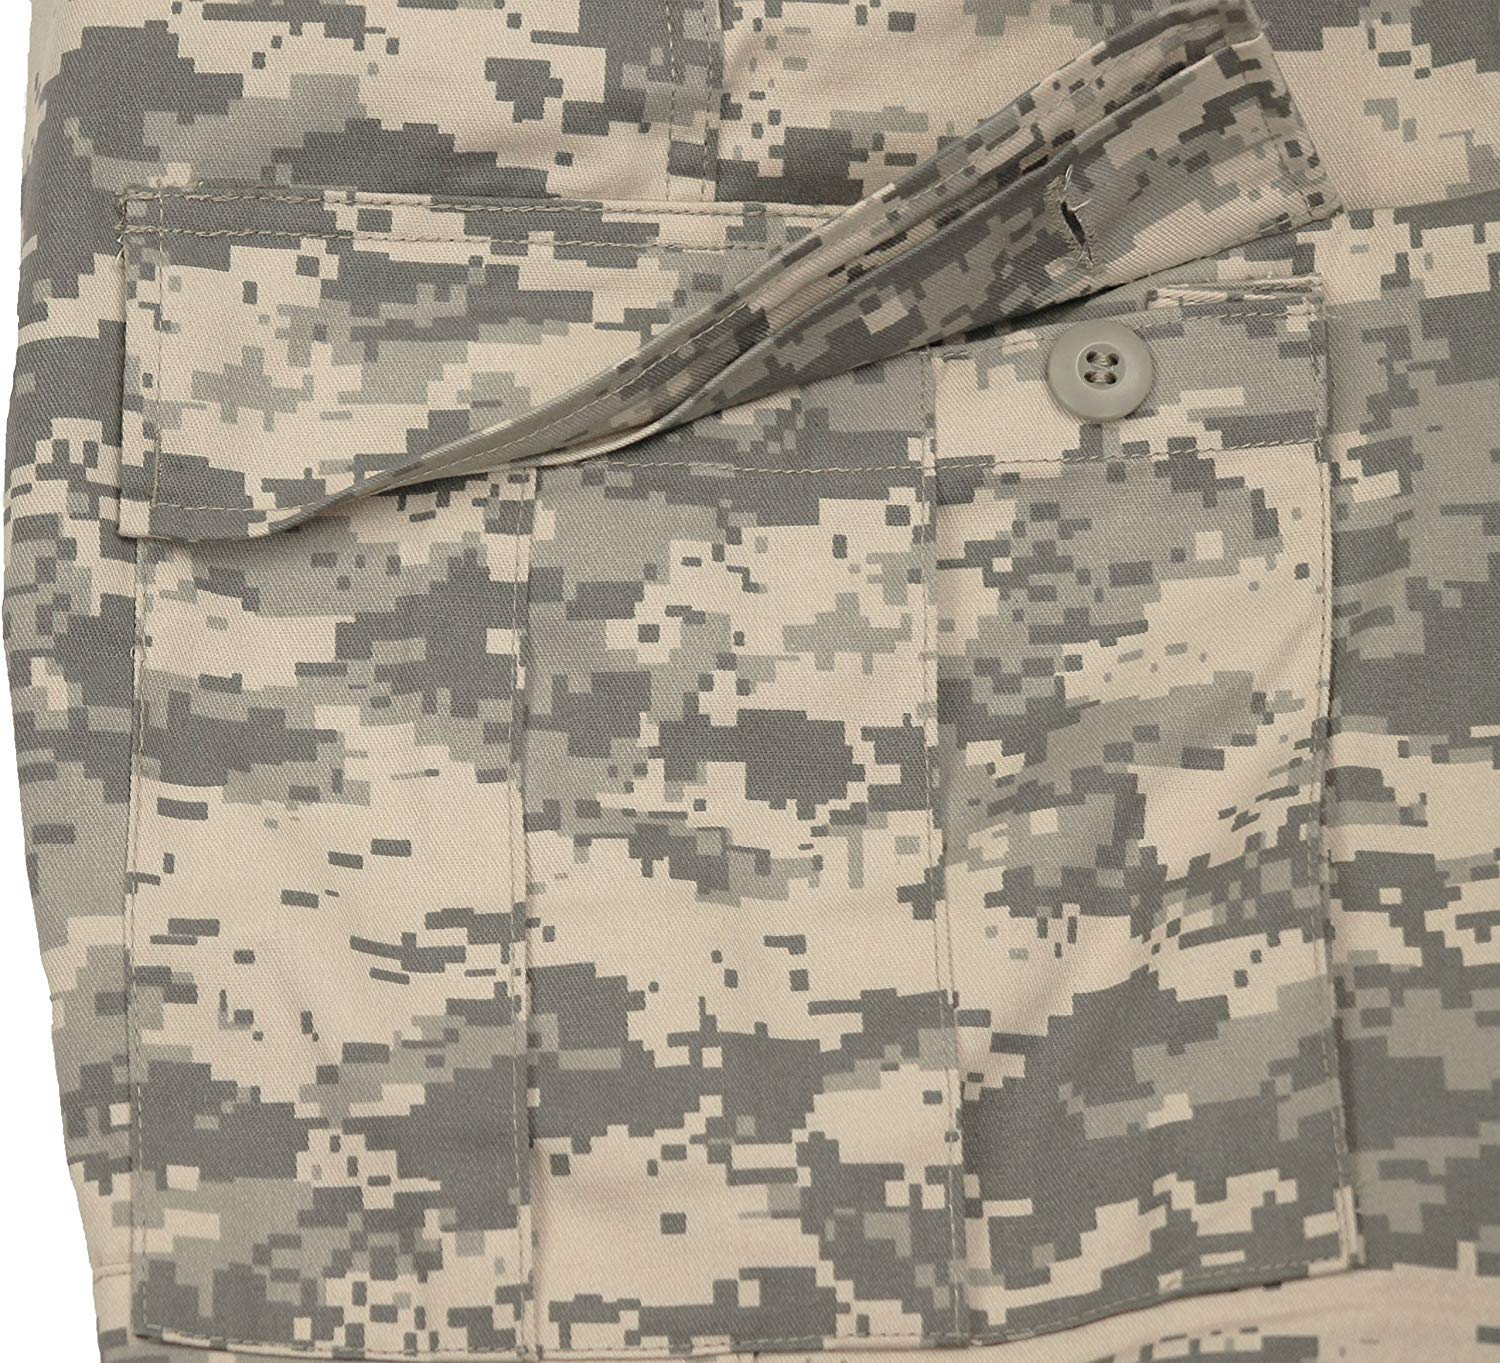 Army Universe Mens ACU Digital Camouflage Military BDU Cargo Pants with Pin  (W 31-35 - I 29.5-32.5) M - 8685-M   Pants   Clothing 862e1e9ca